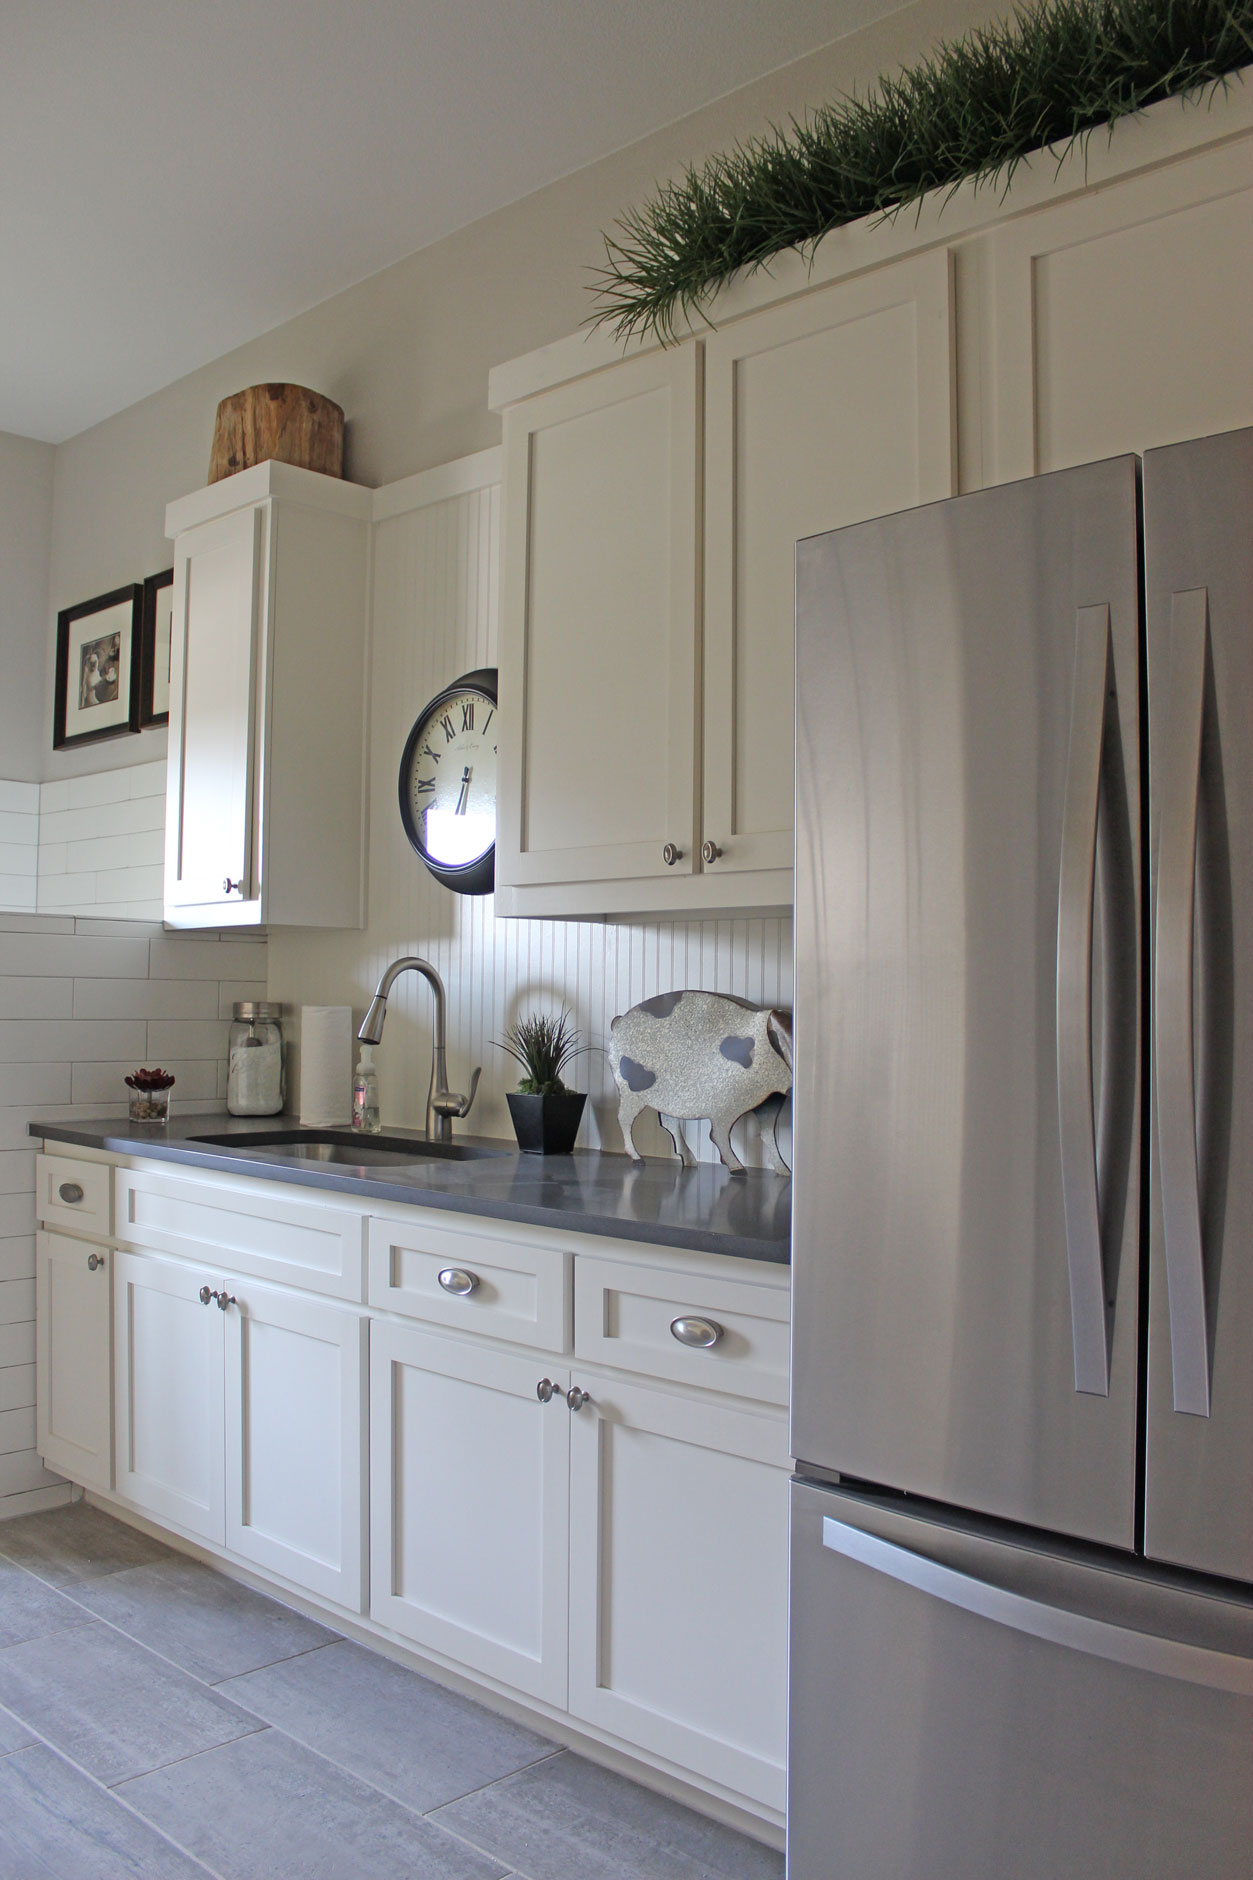 Burrows Cabinets laundry room with white beadboard backsplash